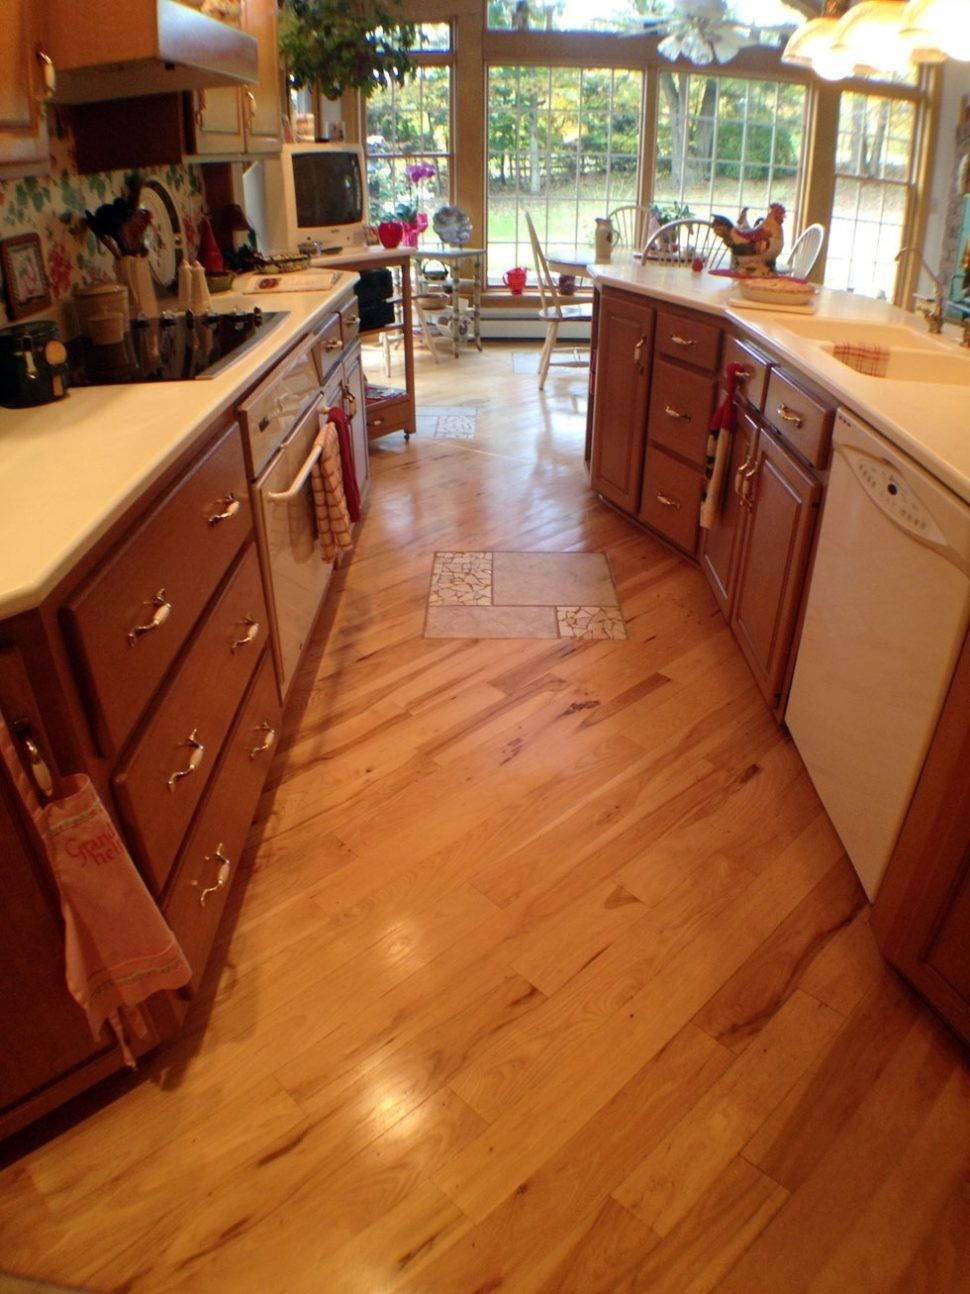 Prefinished Hardwood Flooring Price Per Square Foot Installed Of 17 New Cost Of Hardwood Floor Installation Pics Dizpos Com Inside 16 Lovely S Hardwood Floor Installation Cost